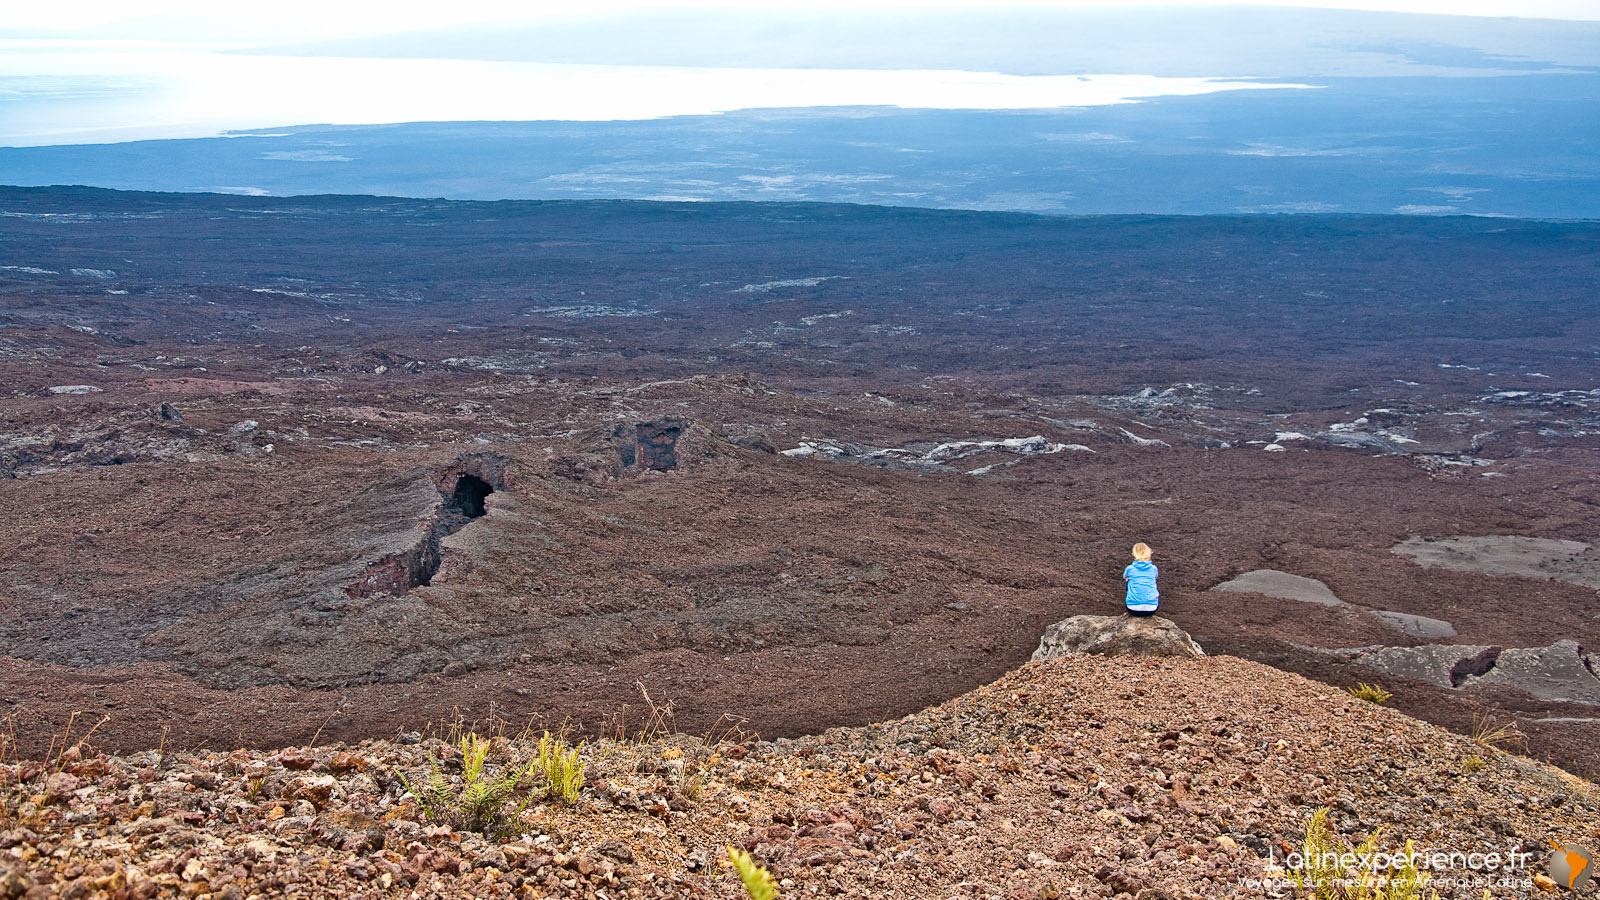 Galapagos - Vue volcan Chico - Latinexperience voyages